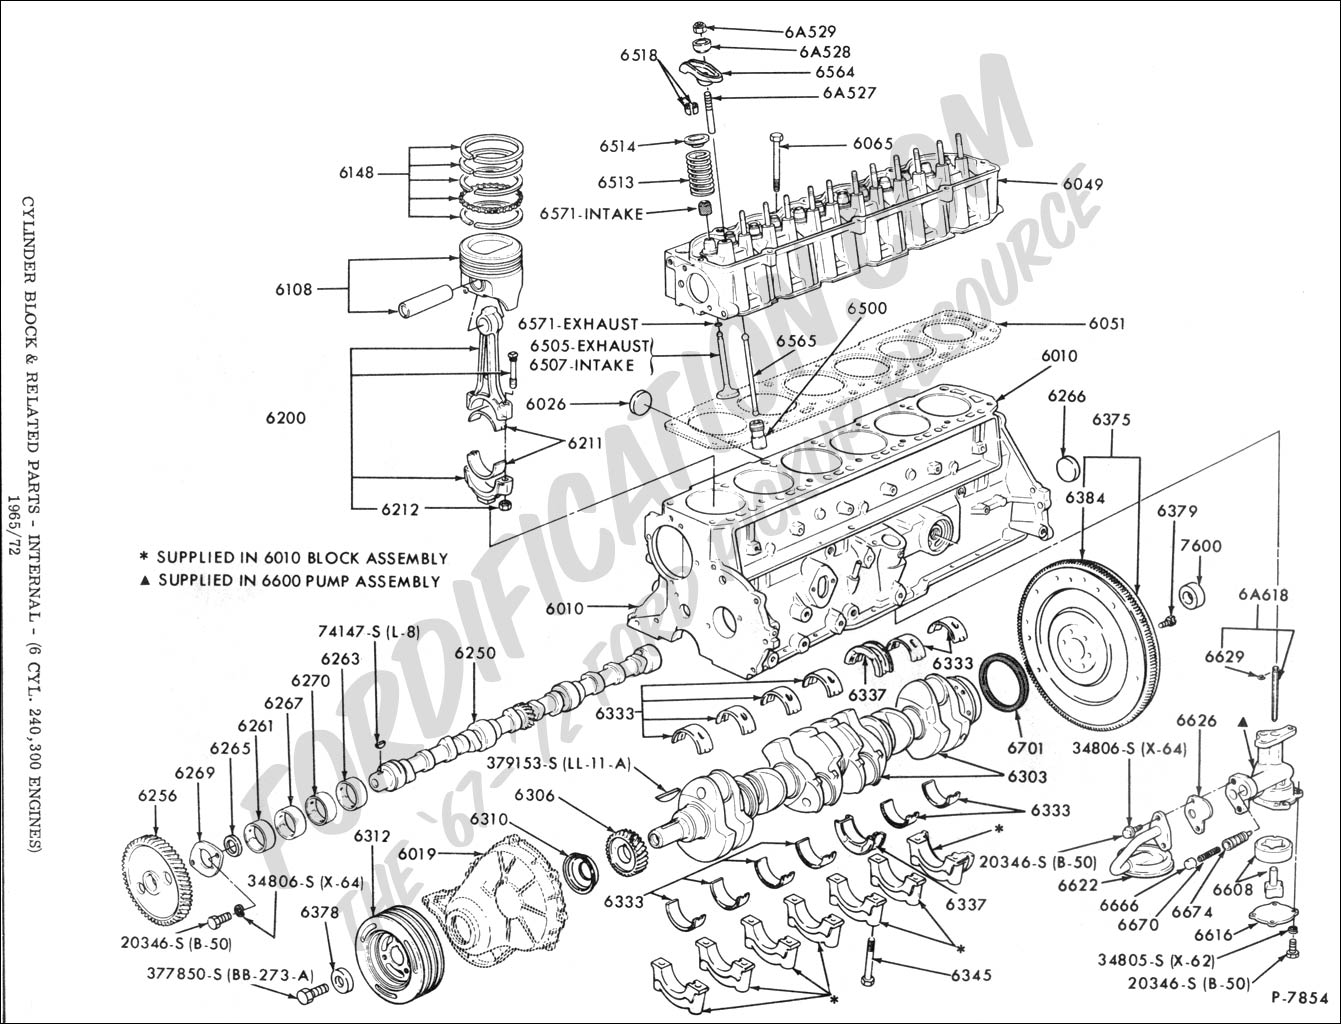 1985 Ford F150 Exhaust Diagram Download Wiring Diagrams System Truck Technical Drawings And Schematics Section E 2005